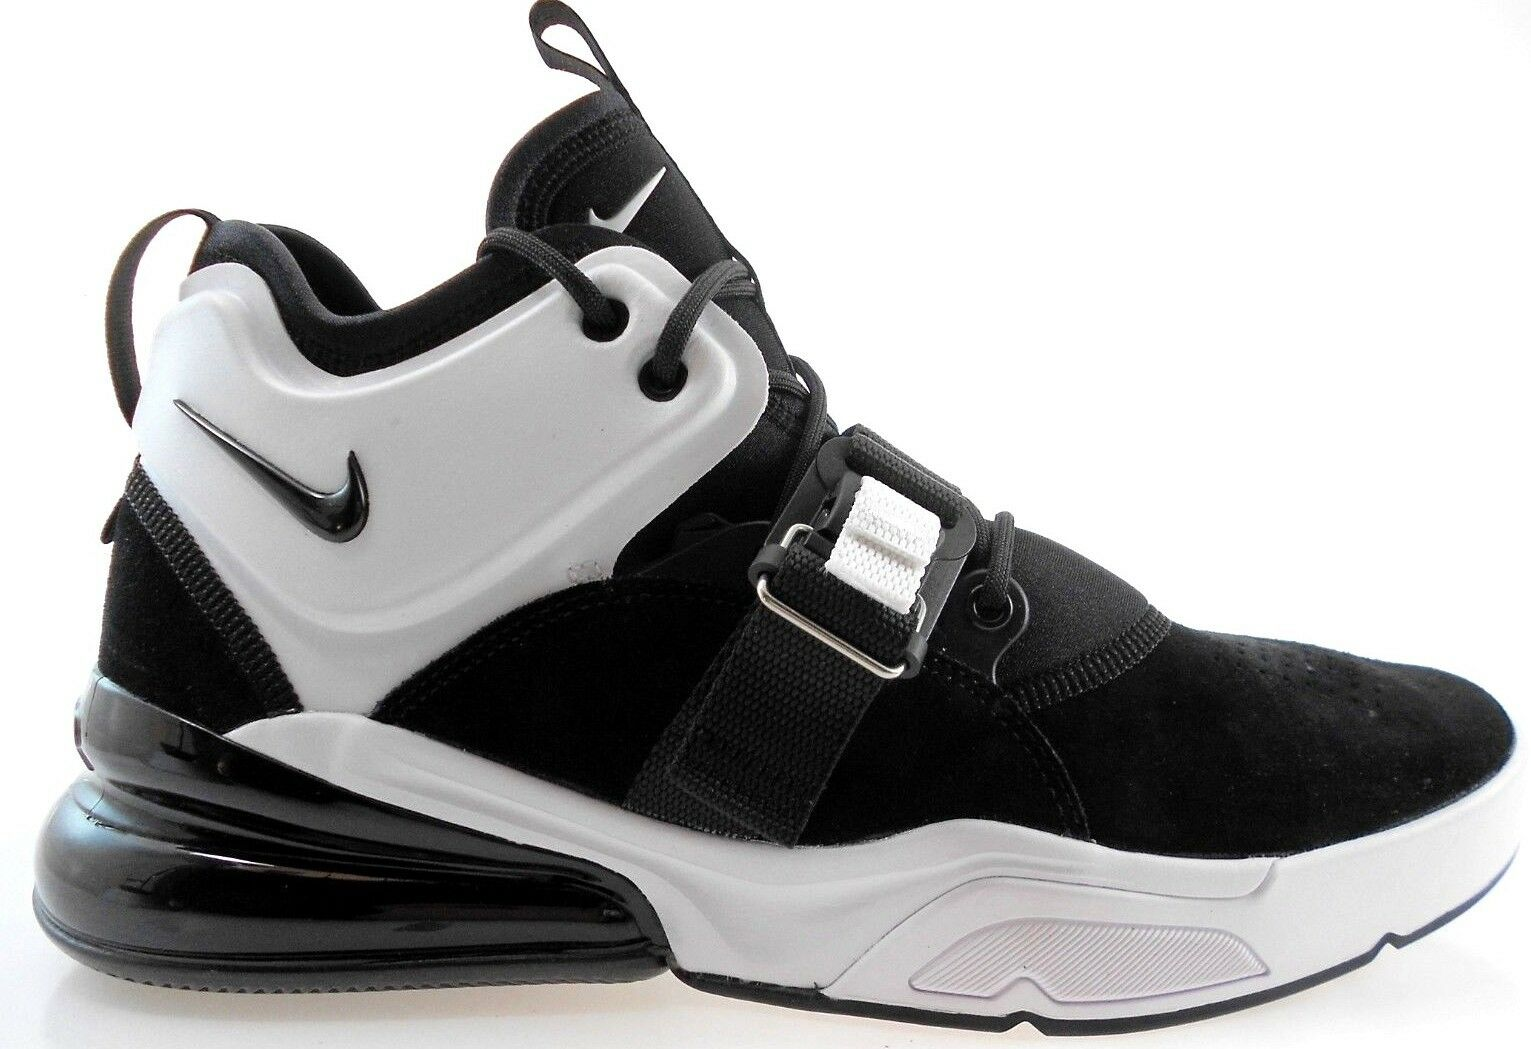 NIKE AIR FORCE 270 MEN'S BLACK WHITE BASKETBALL SHOES, AH6772-006